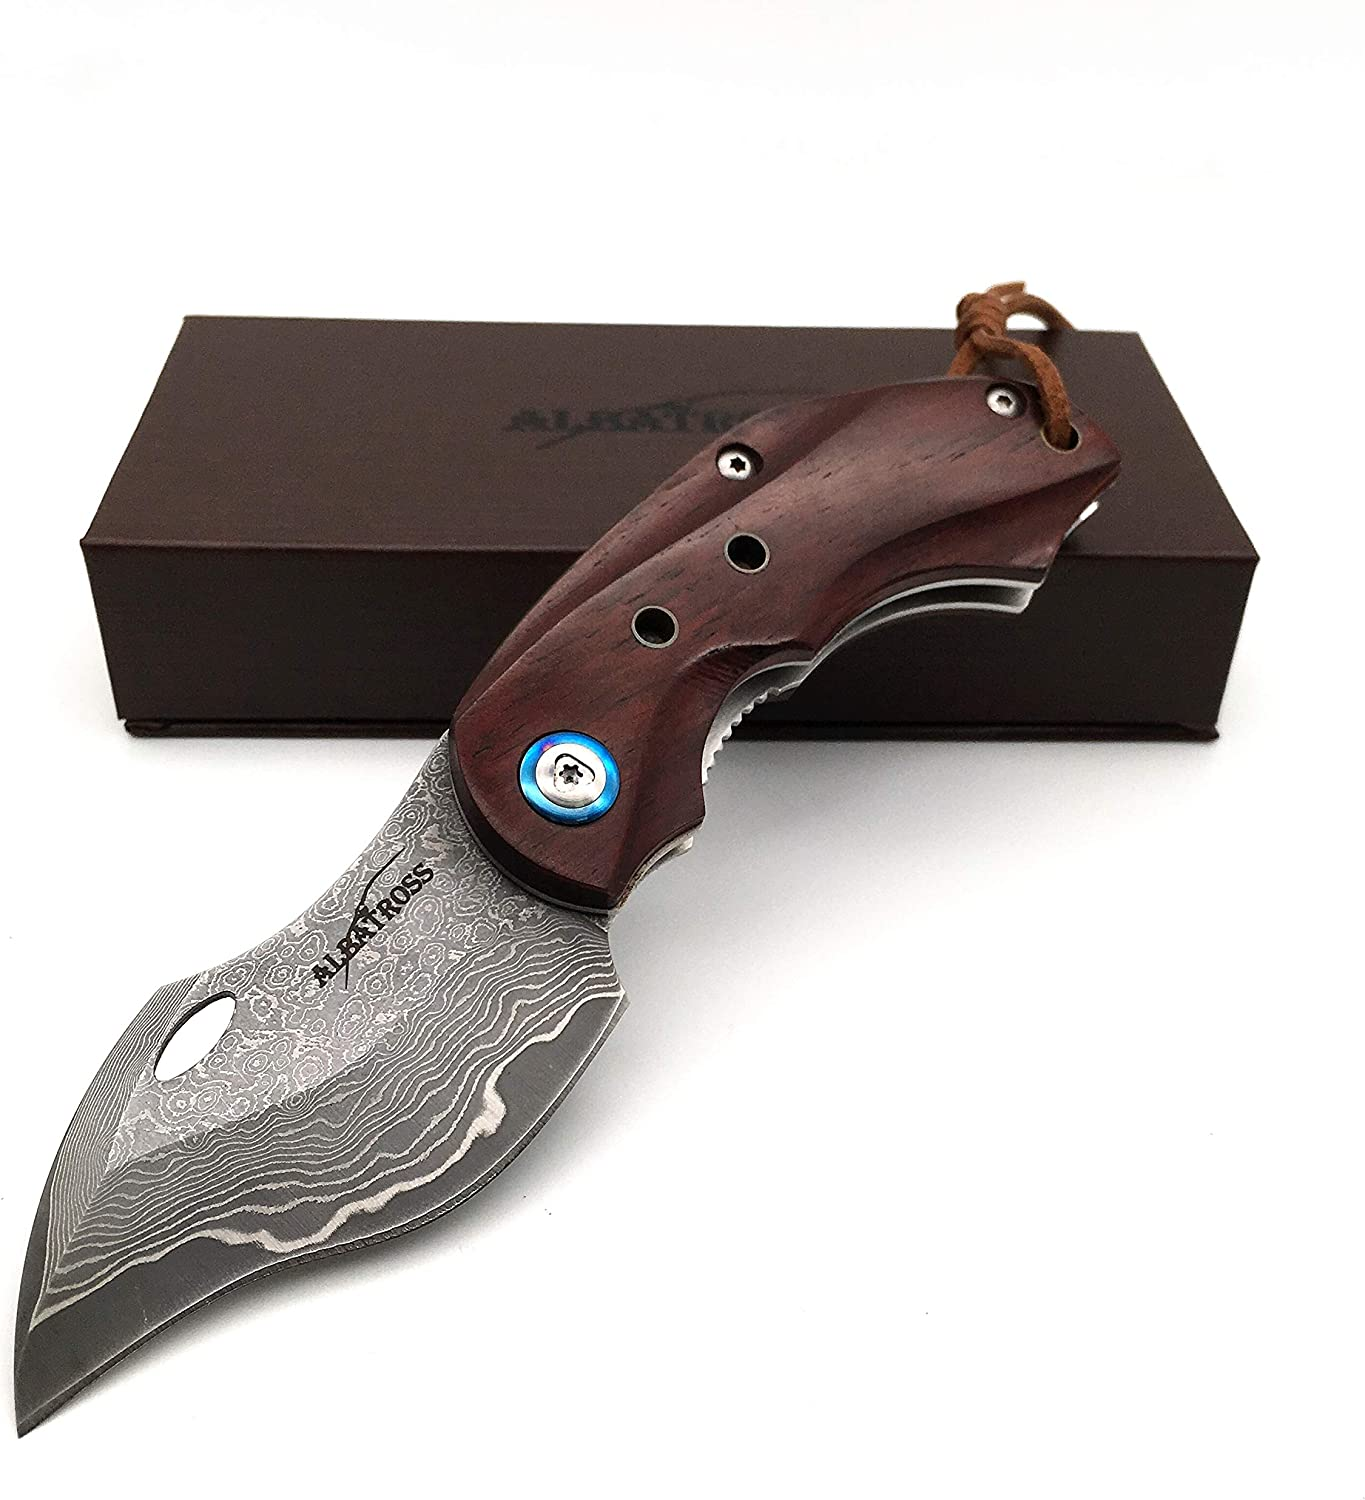 ALBATROSS HGDK003 Sharp VG10 Damascus Folding Pocket Knife with Liner Lock, Yellow Sandalwood Handle, Gifts Collections